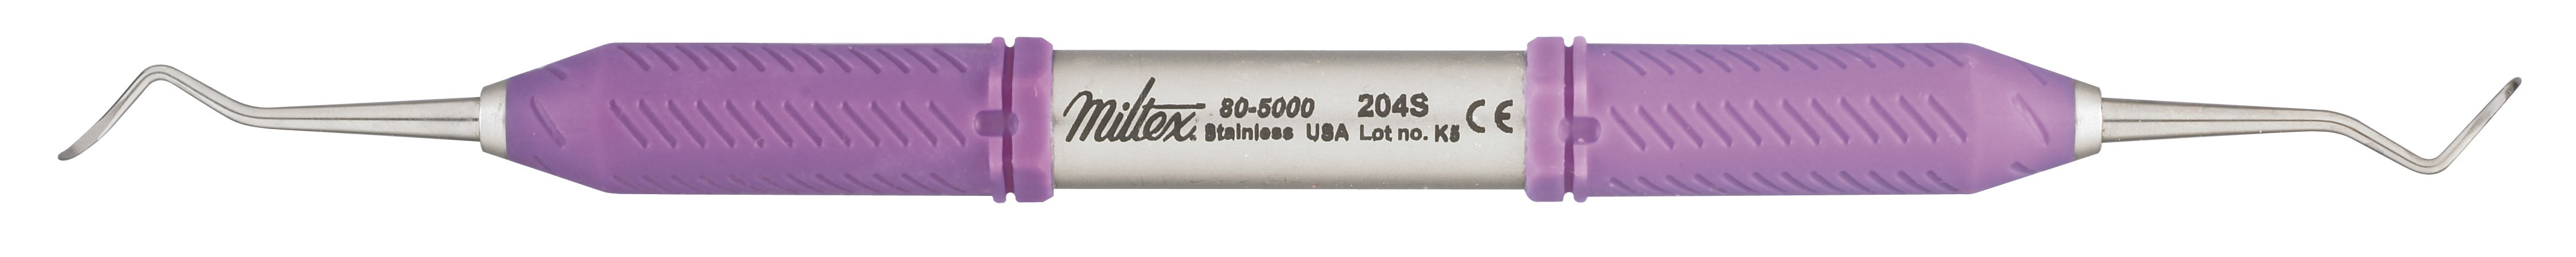 204s-scaler-griplite-s6-80-5000-miltex.jpg